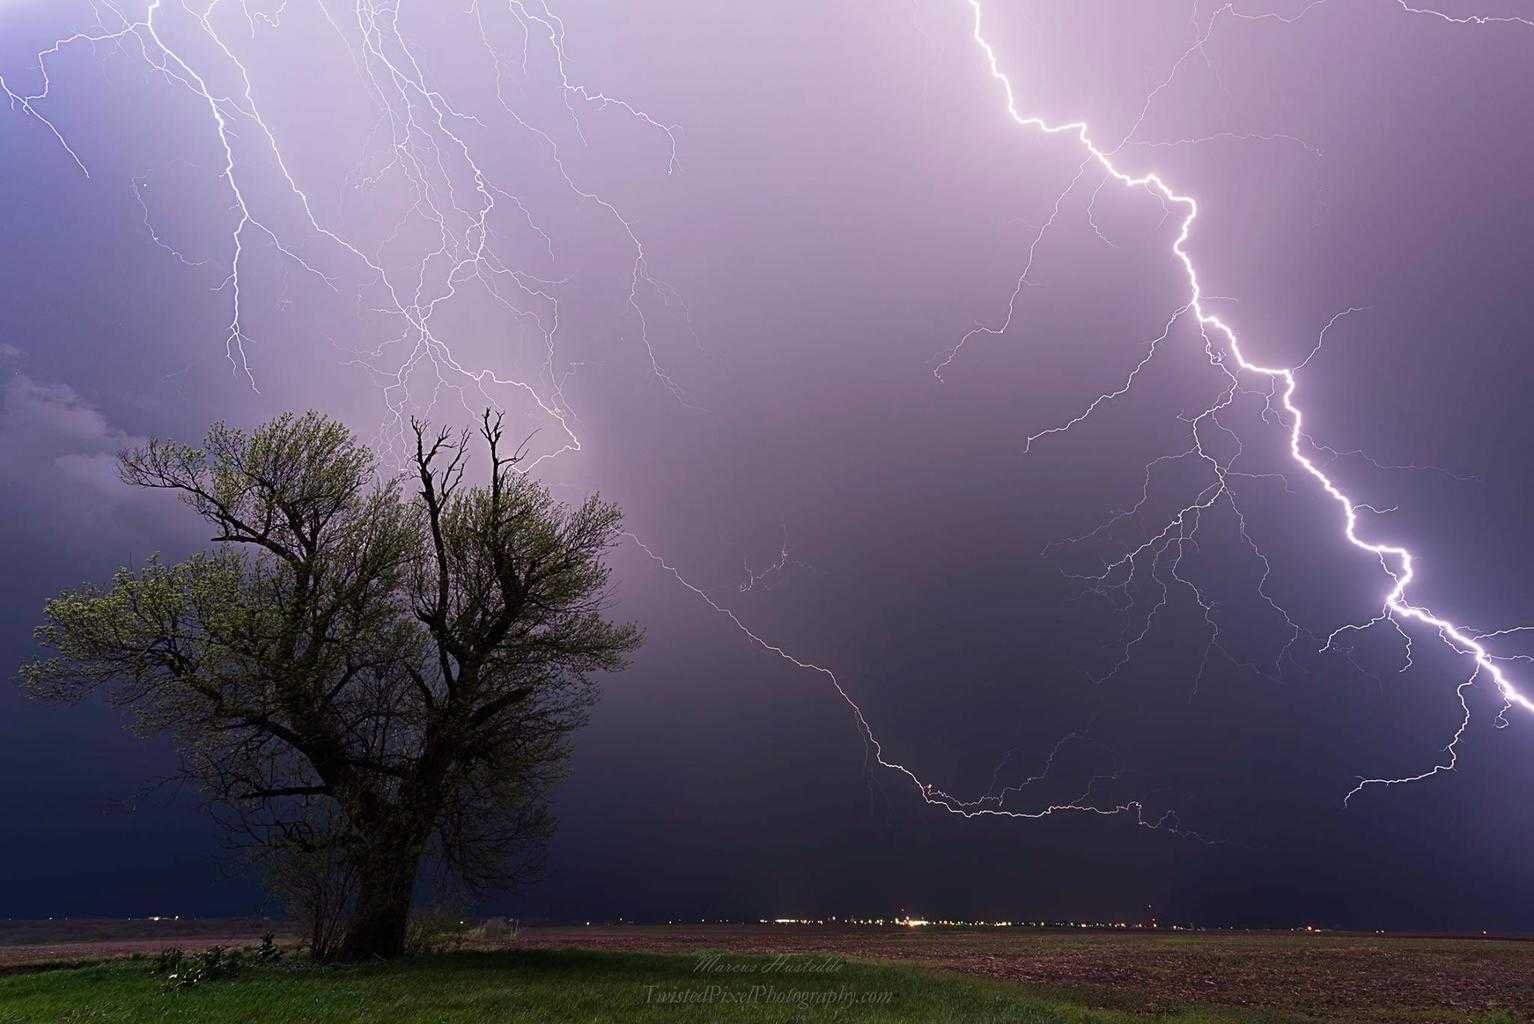 Leaders fill the sky over Hiawatha, KS last night as a CG strikes too close for comfort in the field next to me.